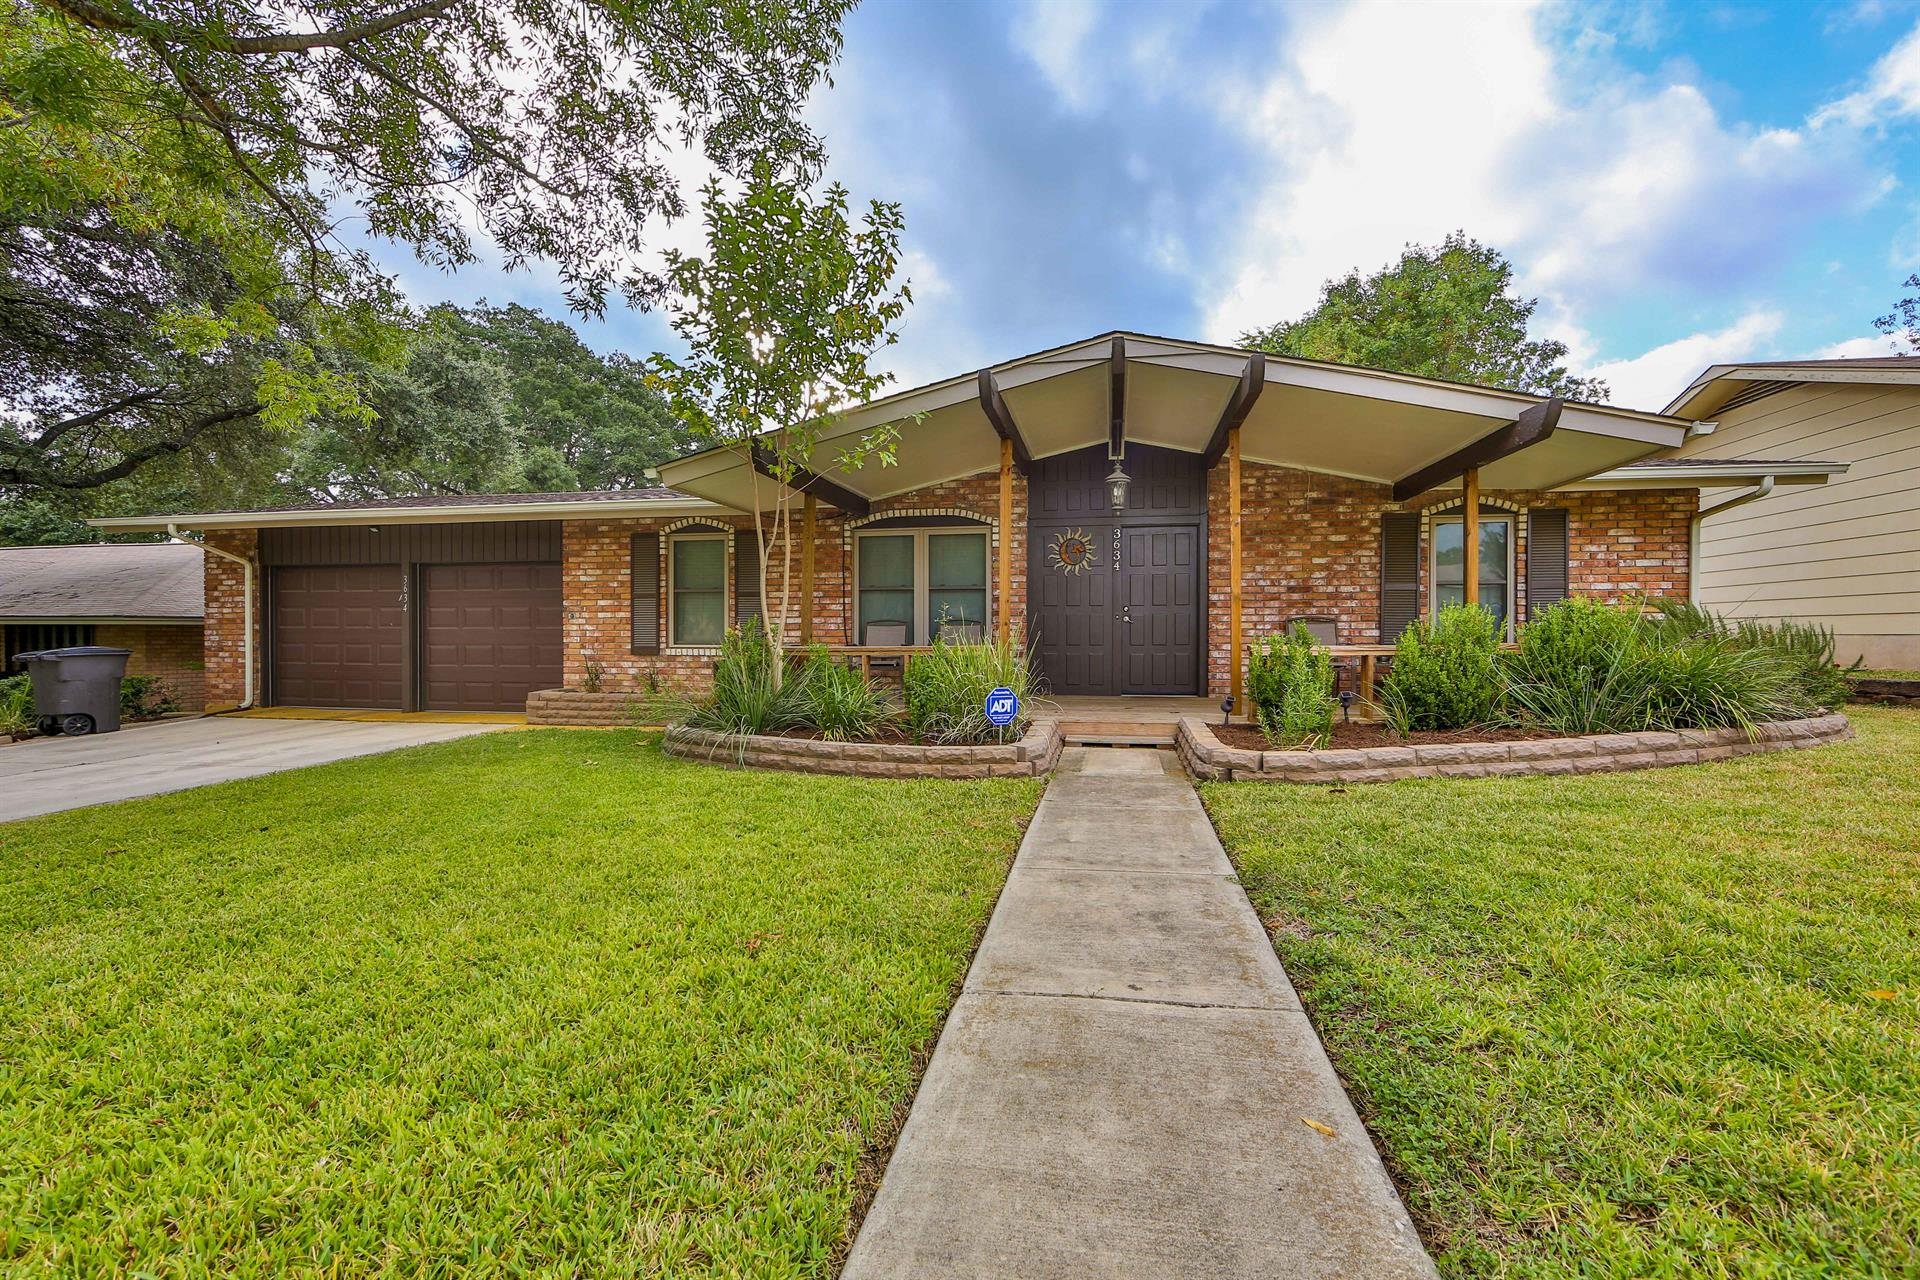 Residential for Sale at 3634 Minthill Dr 3634 Minthill Dr San Antonio, Texas 78230 United States